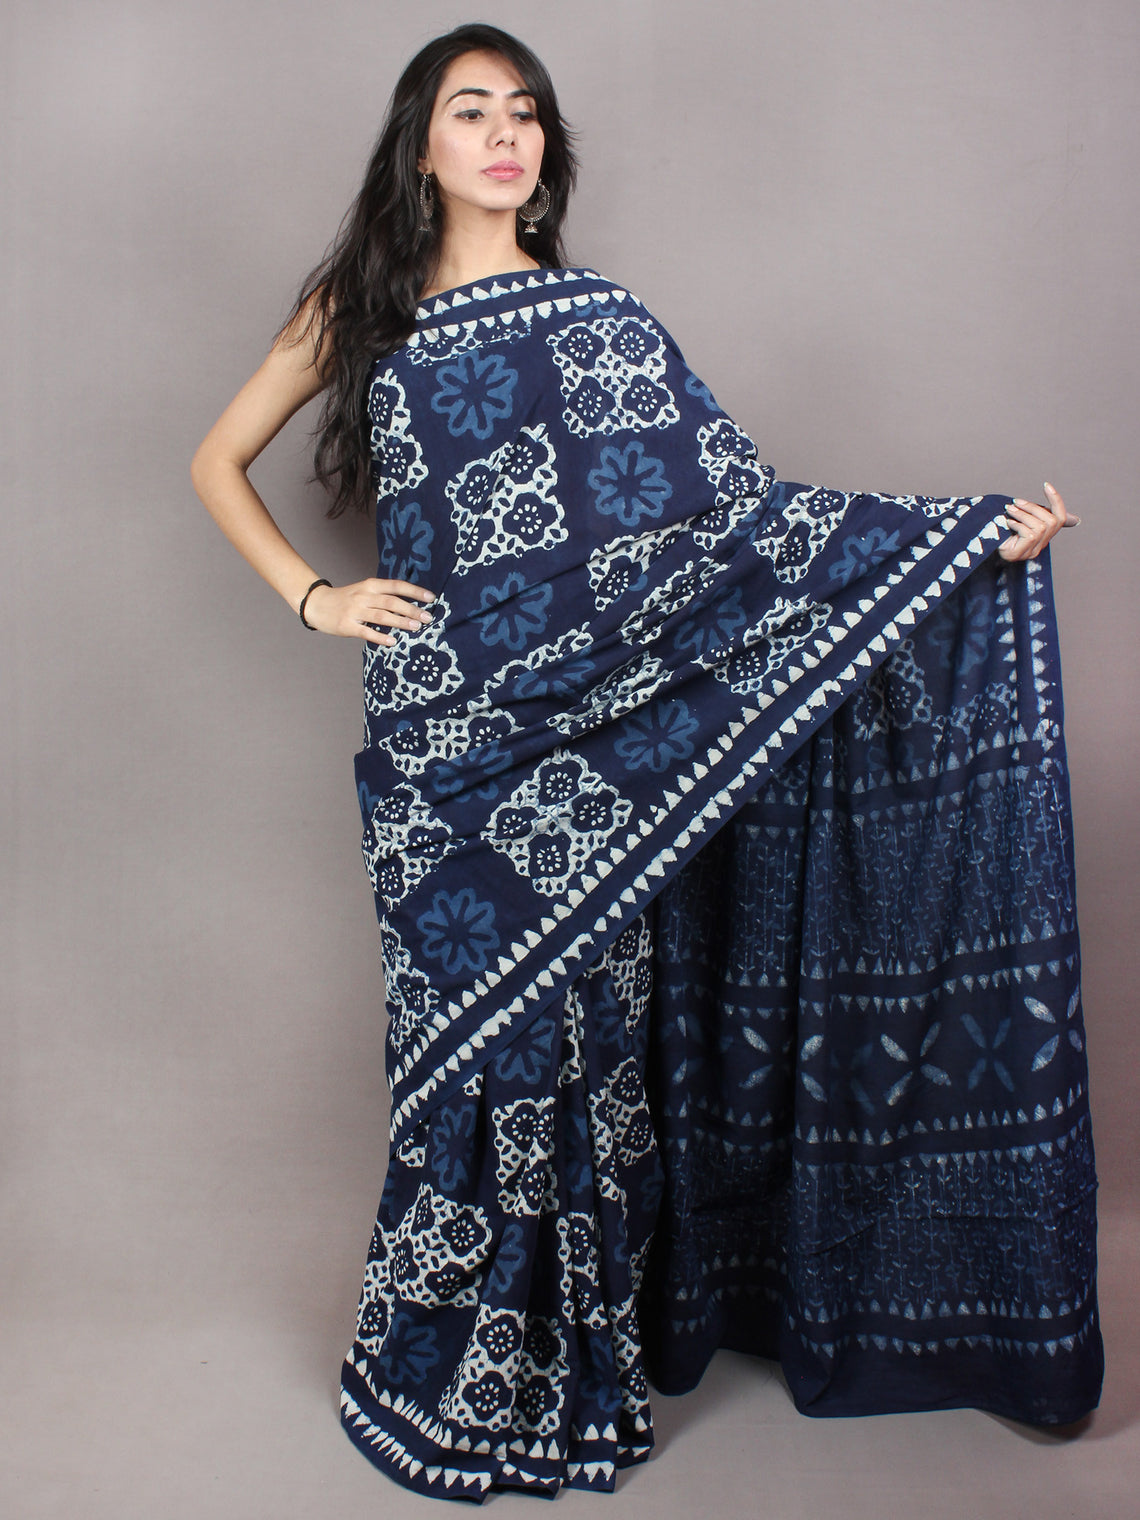 Indigo White Cotton Hand Block Printed & Painted Saree - S03170737